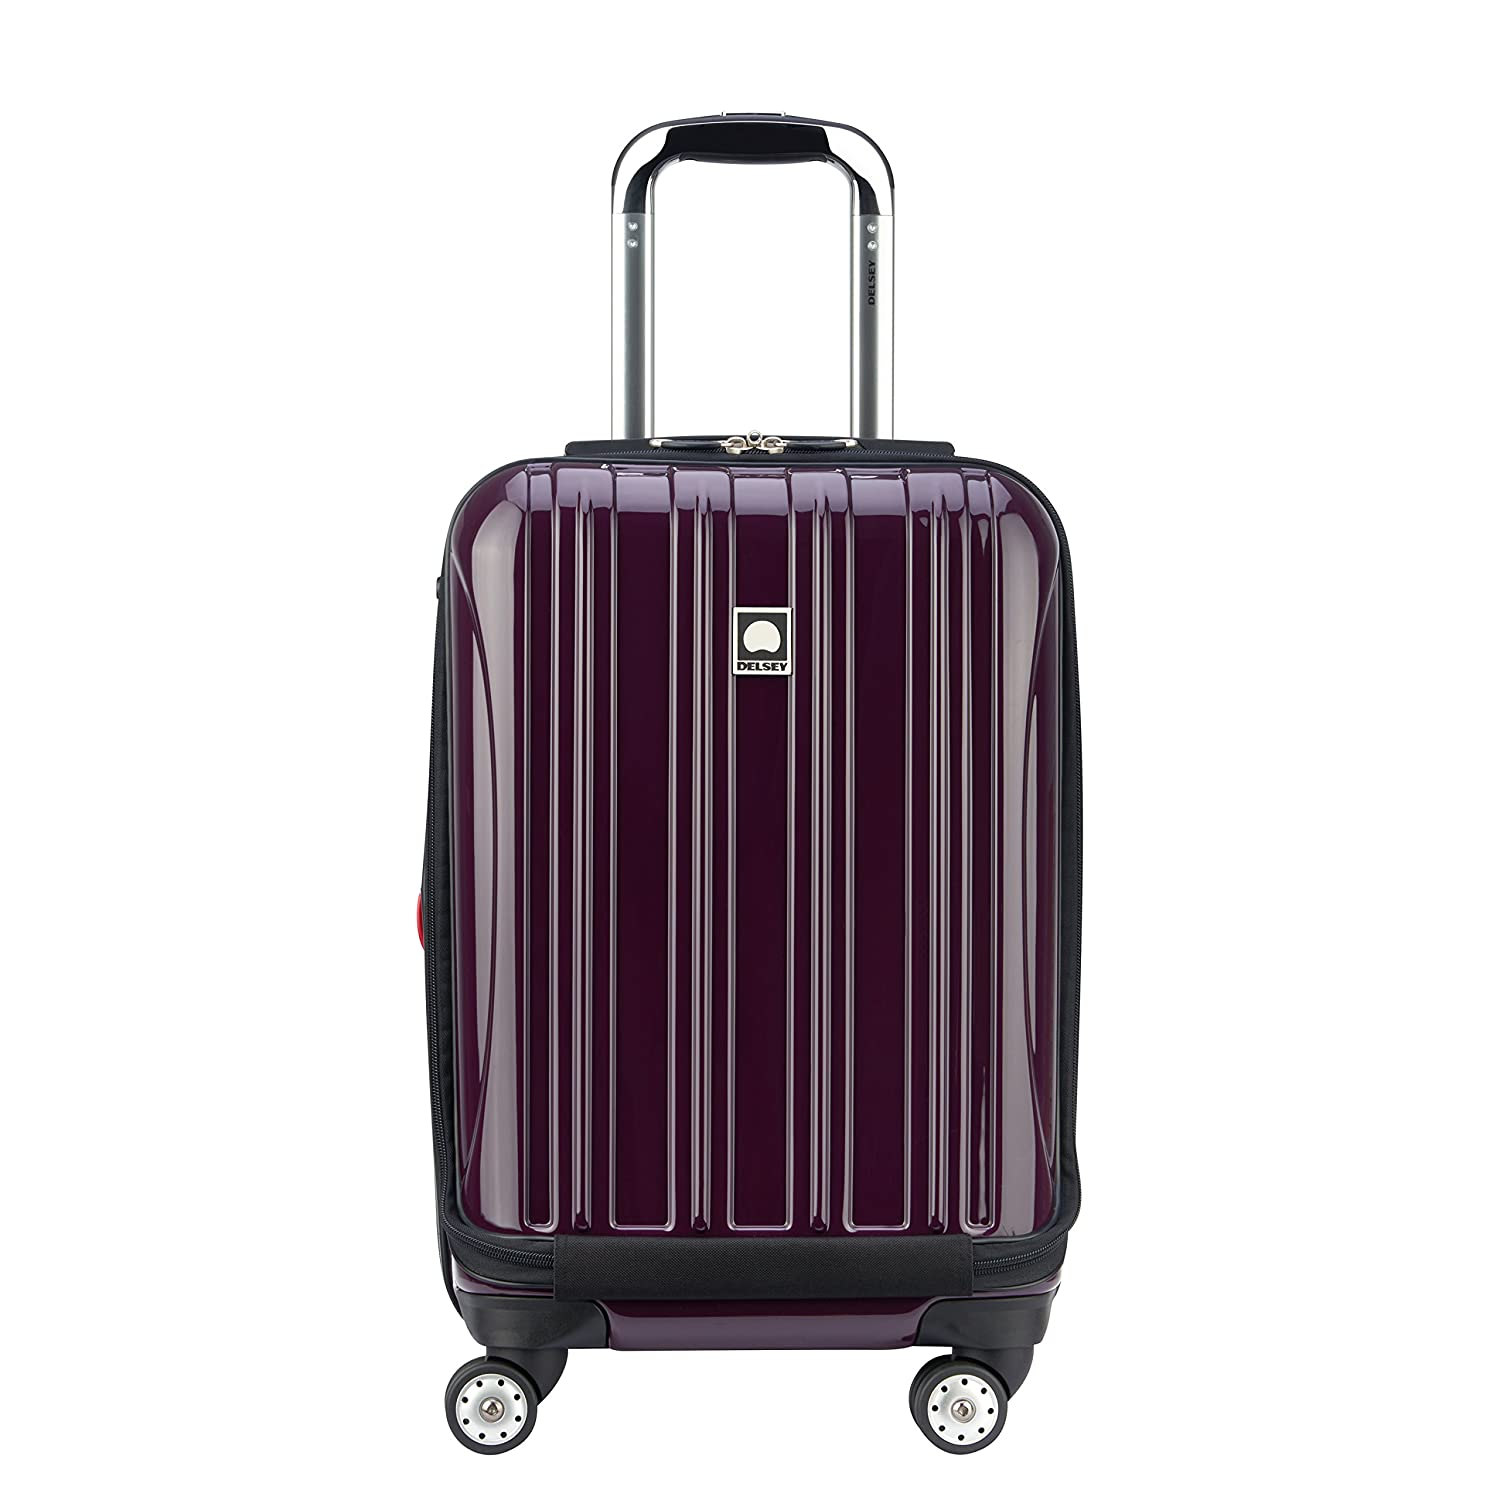 Delsey Luggage Helium Aero International Carry On Expandable Spinner Trolley, Cobalt Blue 07640BD